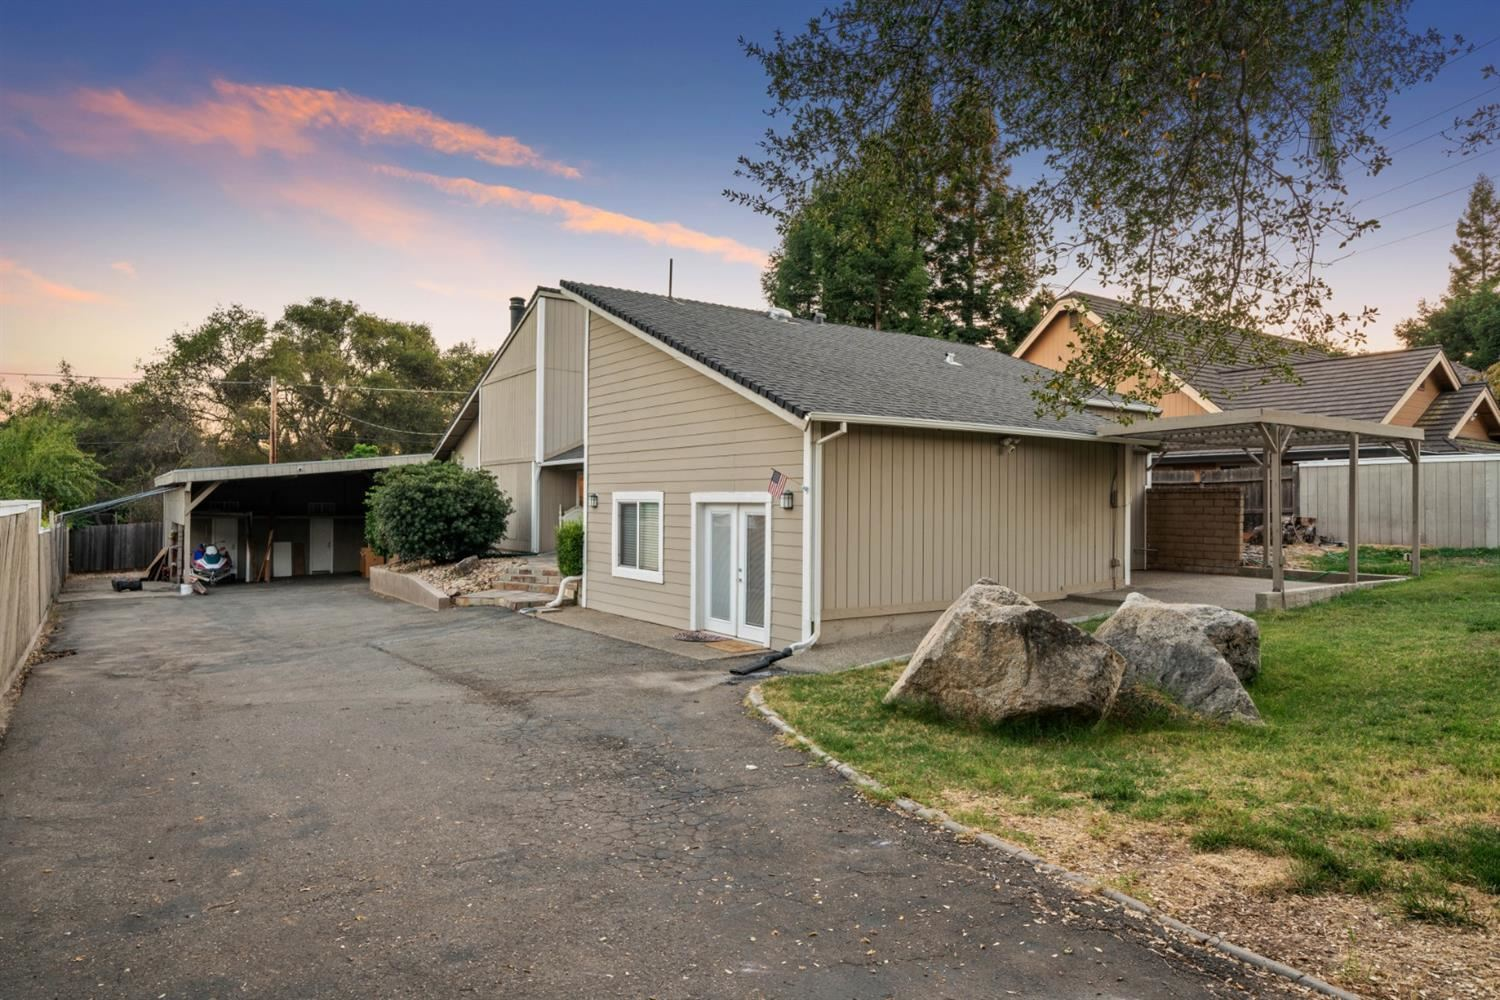 Photo of 7460 Douglas Boulevard, Granite Bay, CA 95746 (MLS # 20064013)